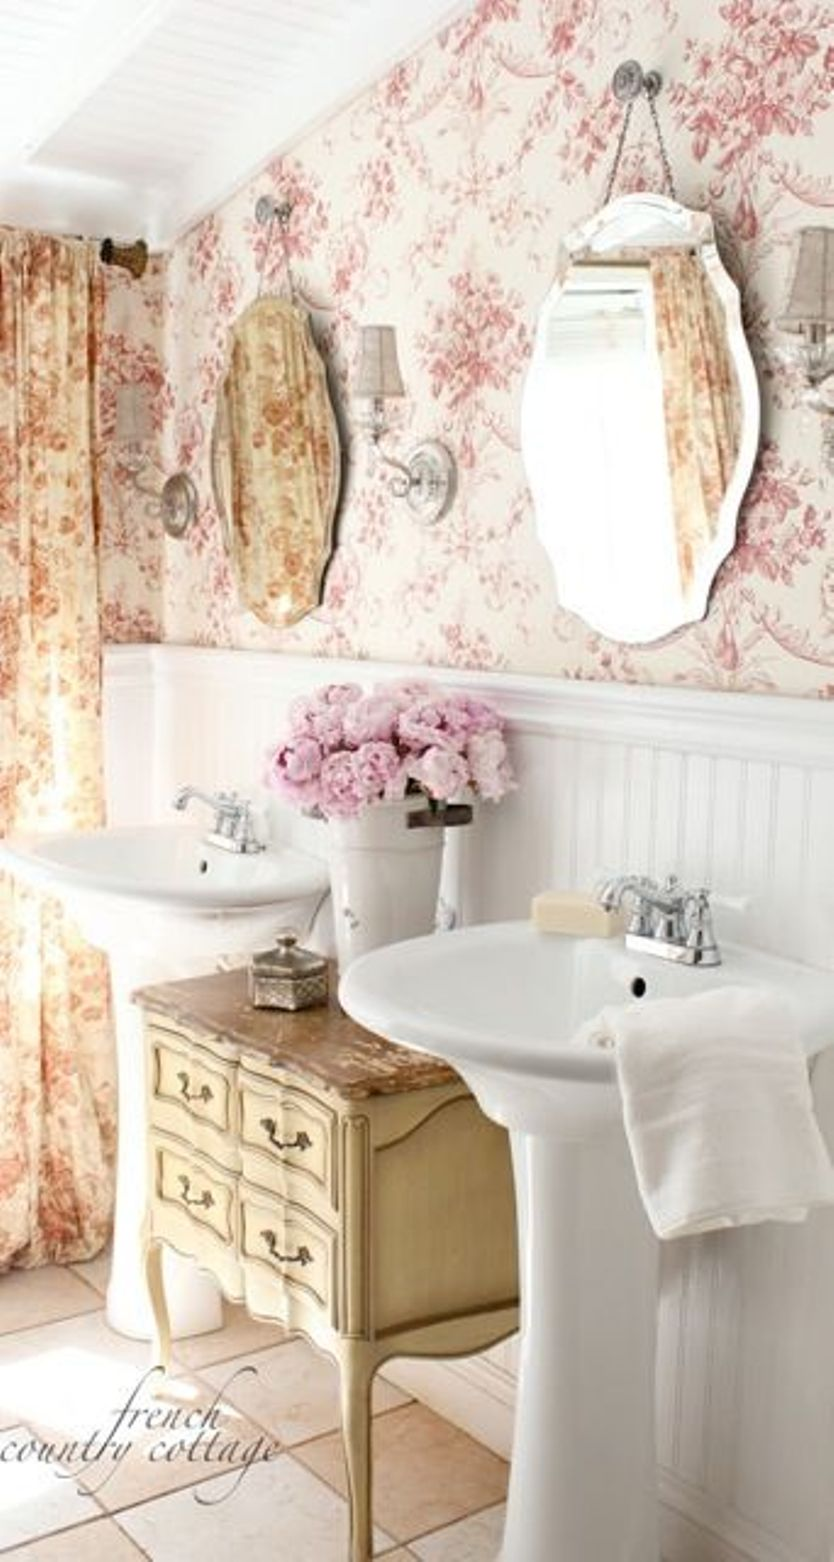 Small Vintage Bathroom Ideas Unique Add Glamour With Small Vintage Bathroom Ideas Review